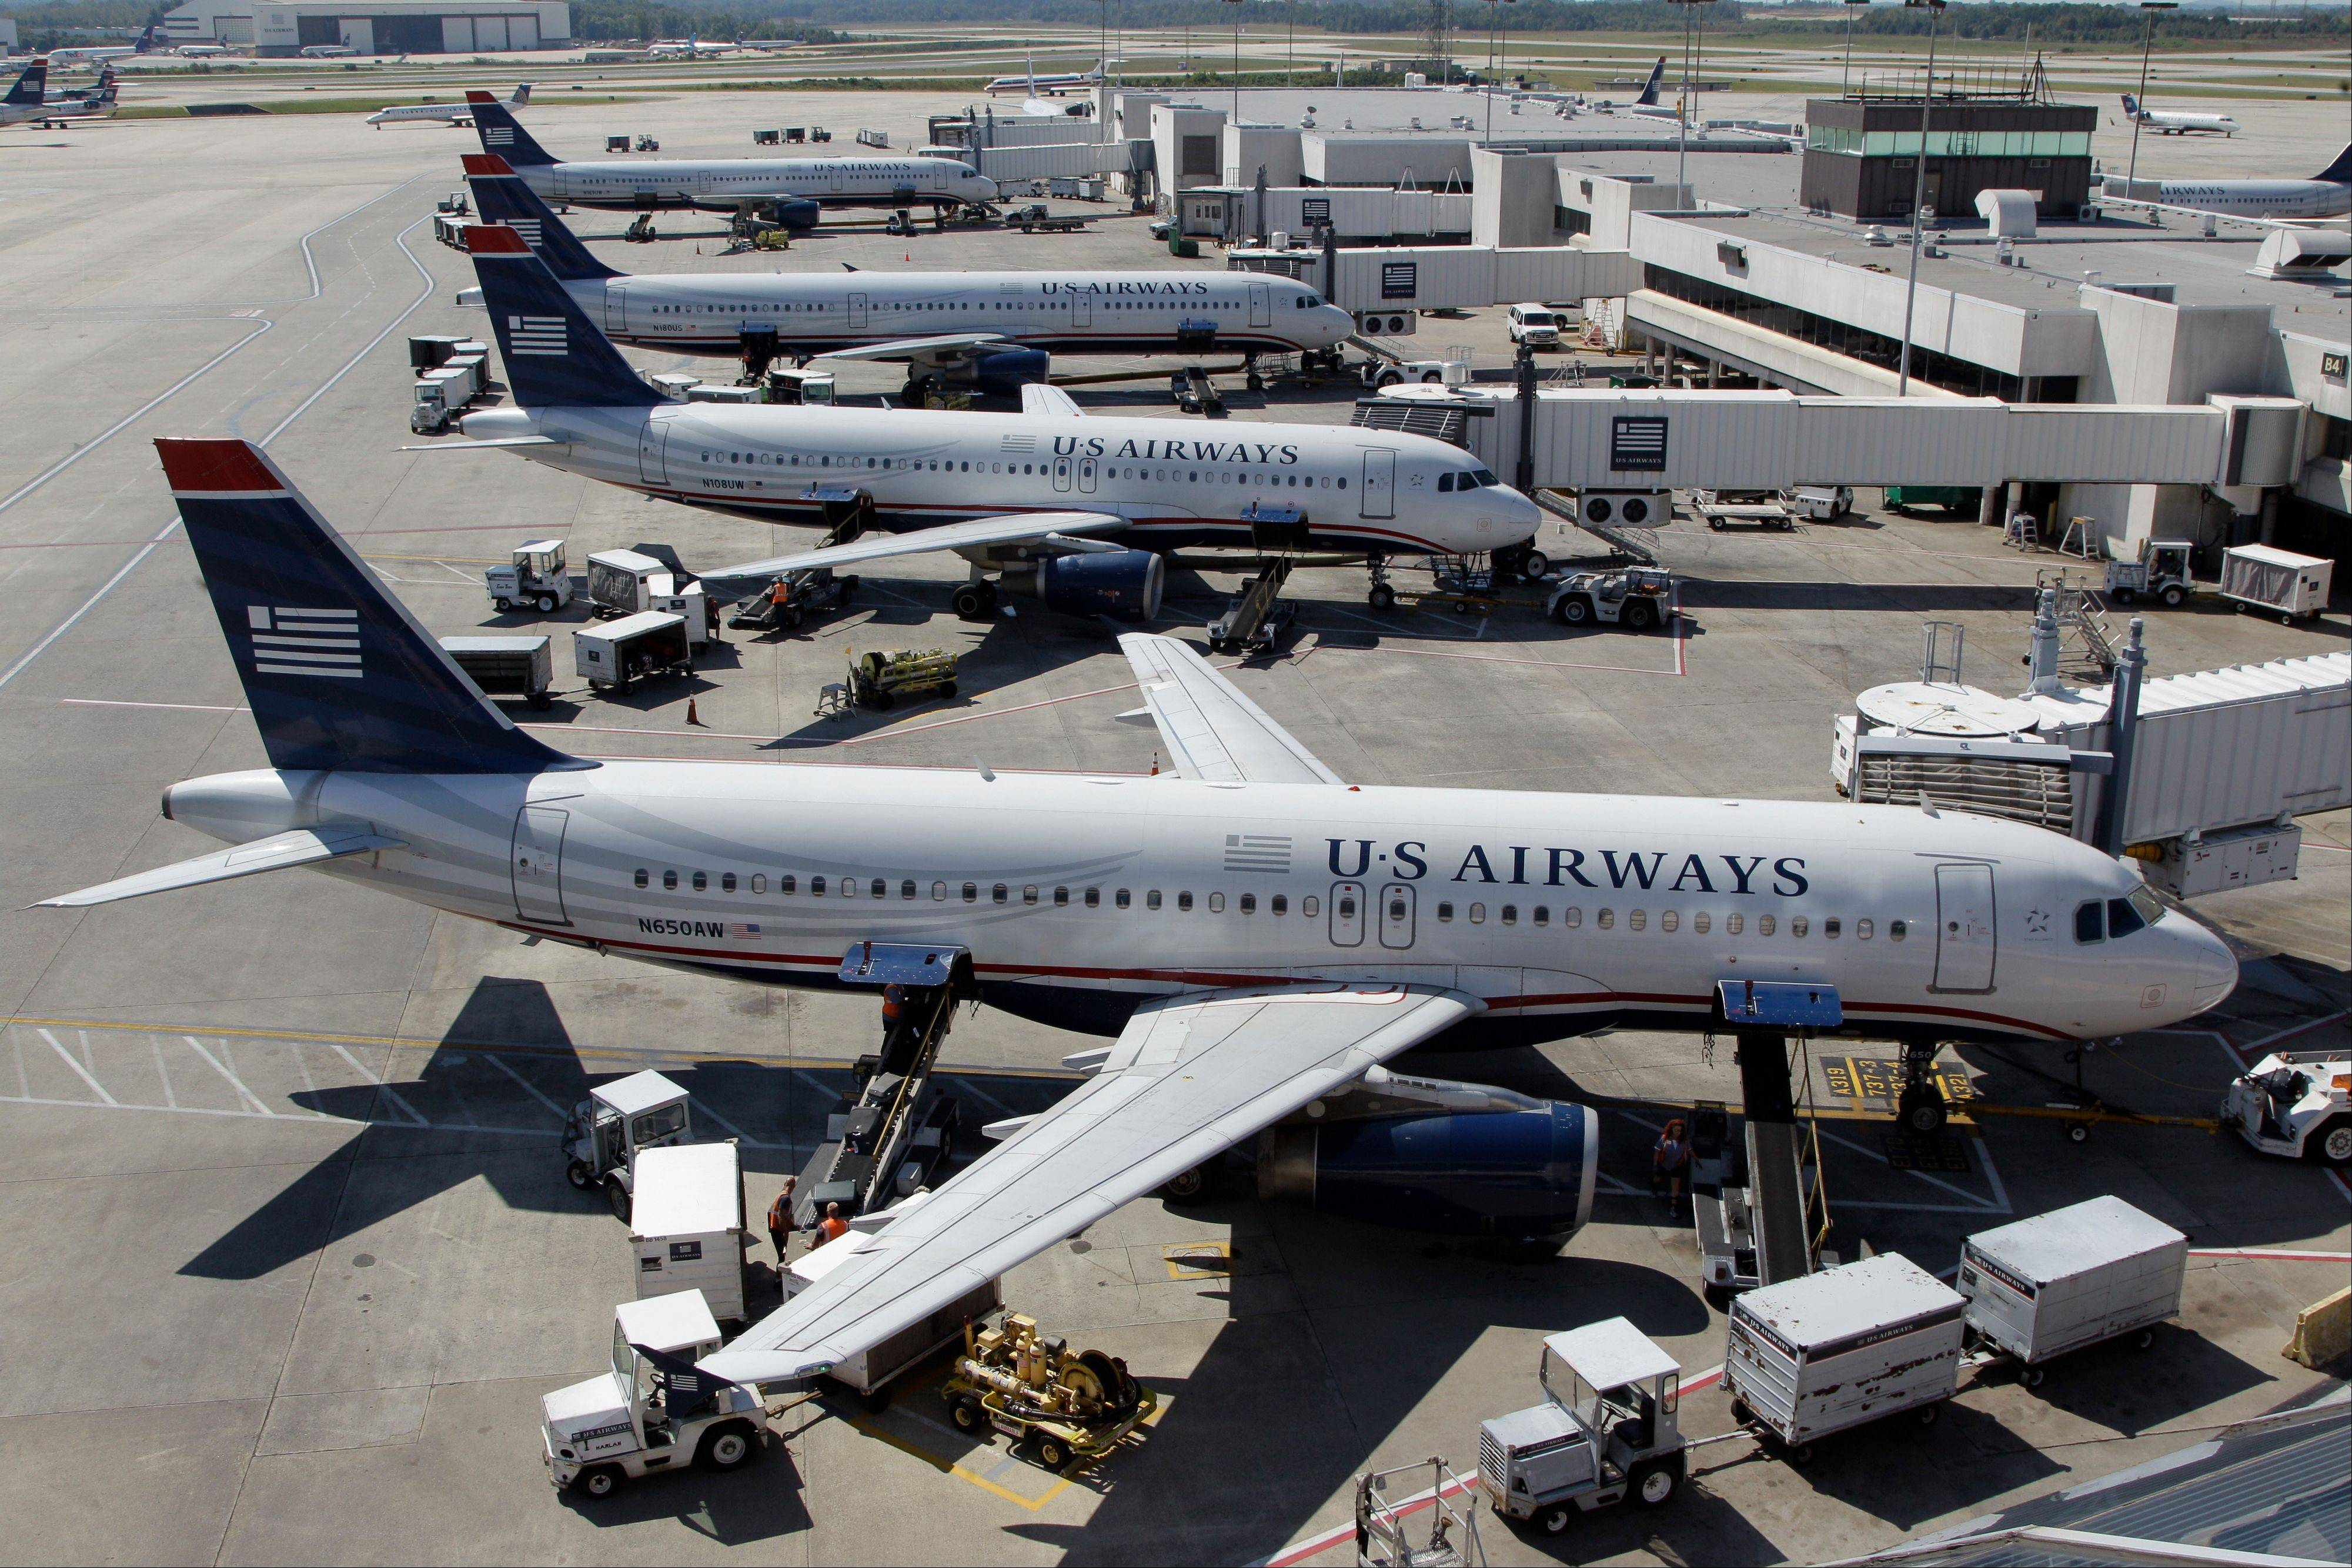 US Airways jets parked at their gates at the Charlotte/Douglas International airport in Charlotte, N.C.